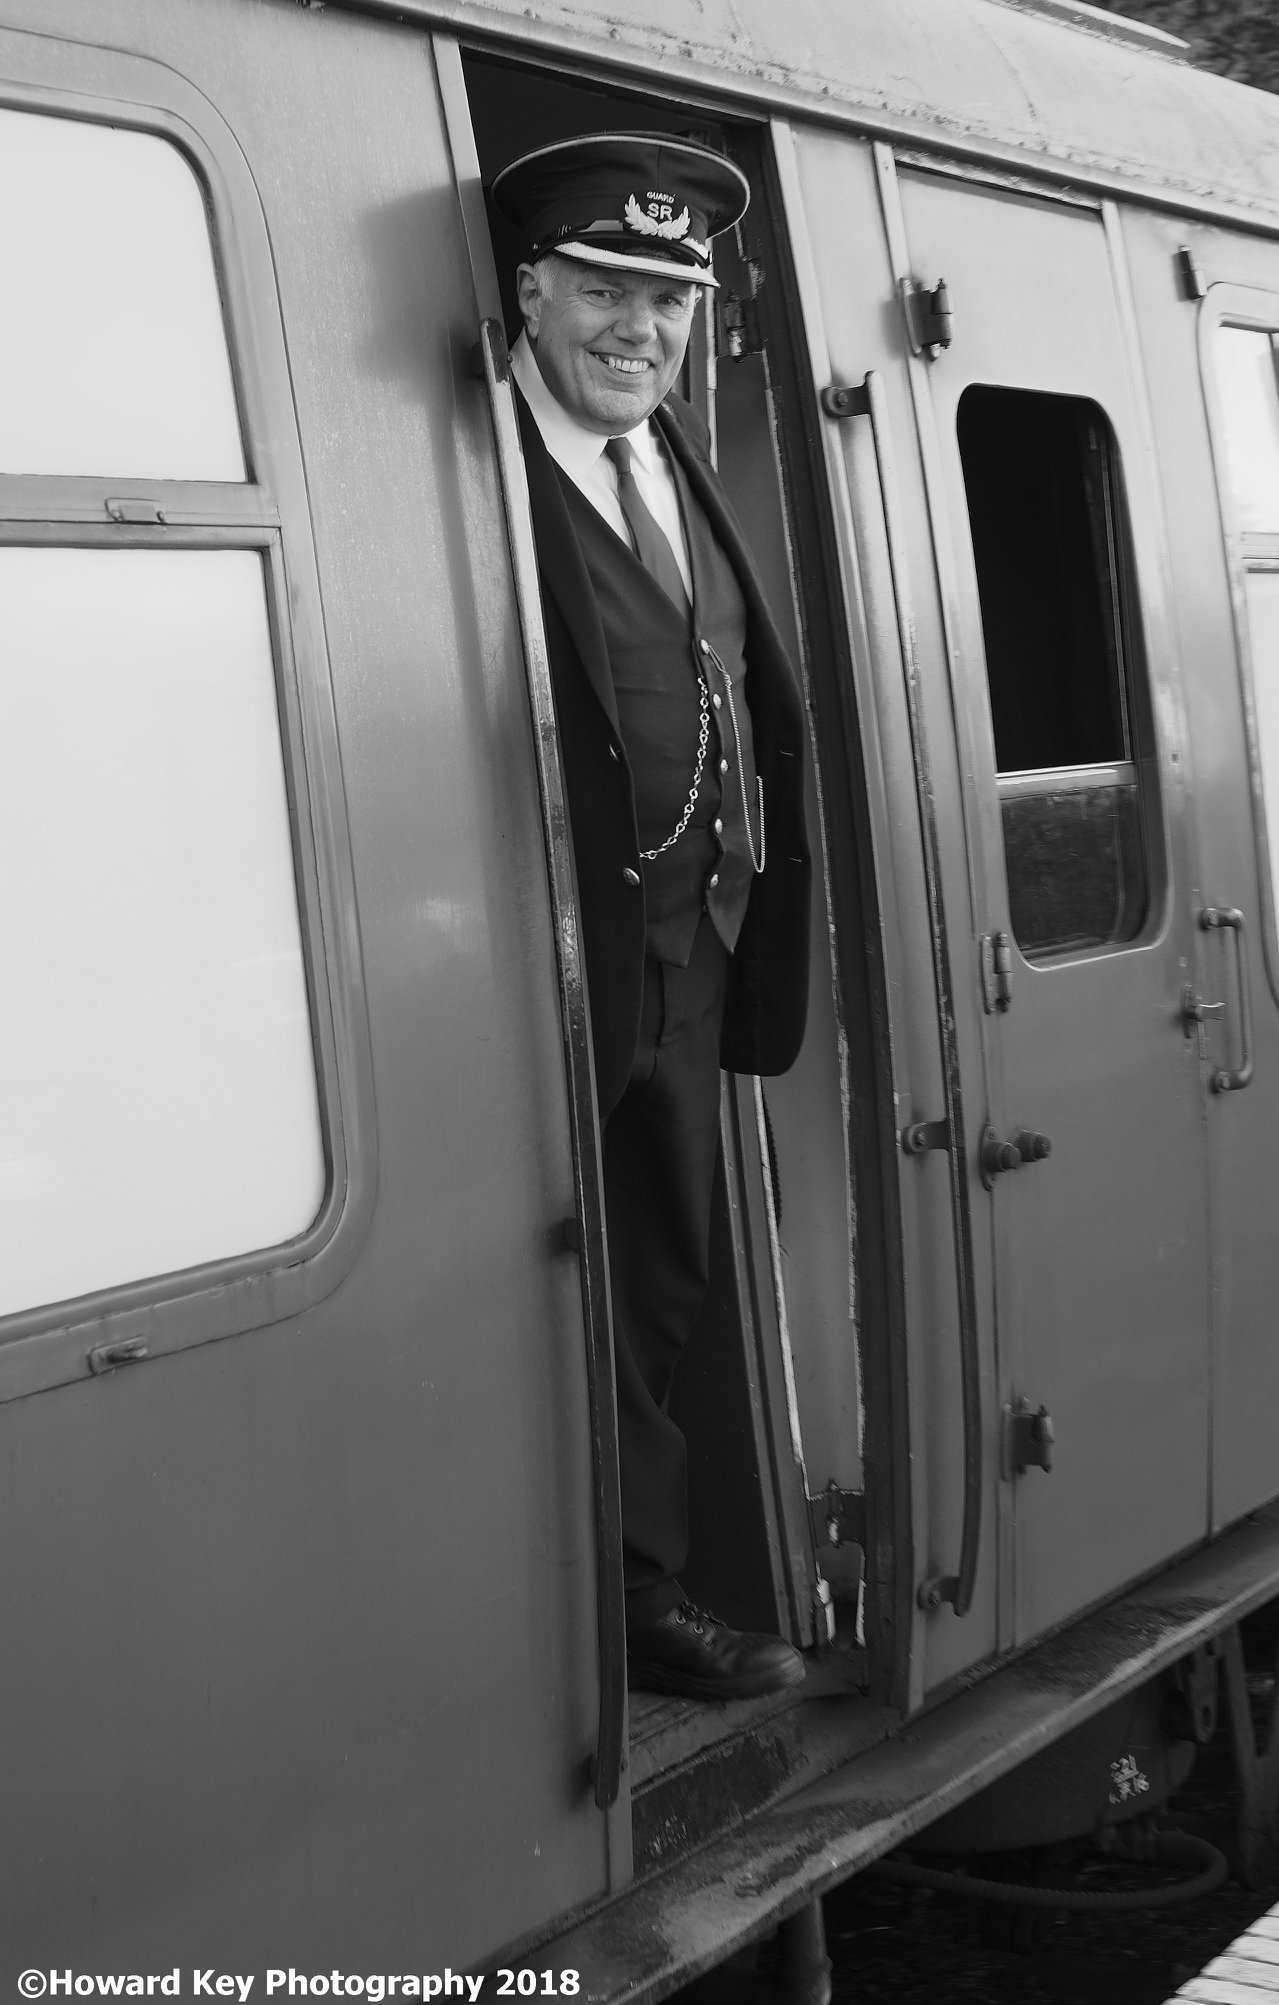 an image of Roger key dressed as a guard at the Watercress Line